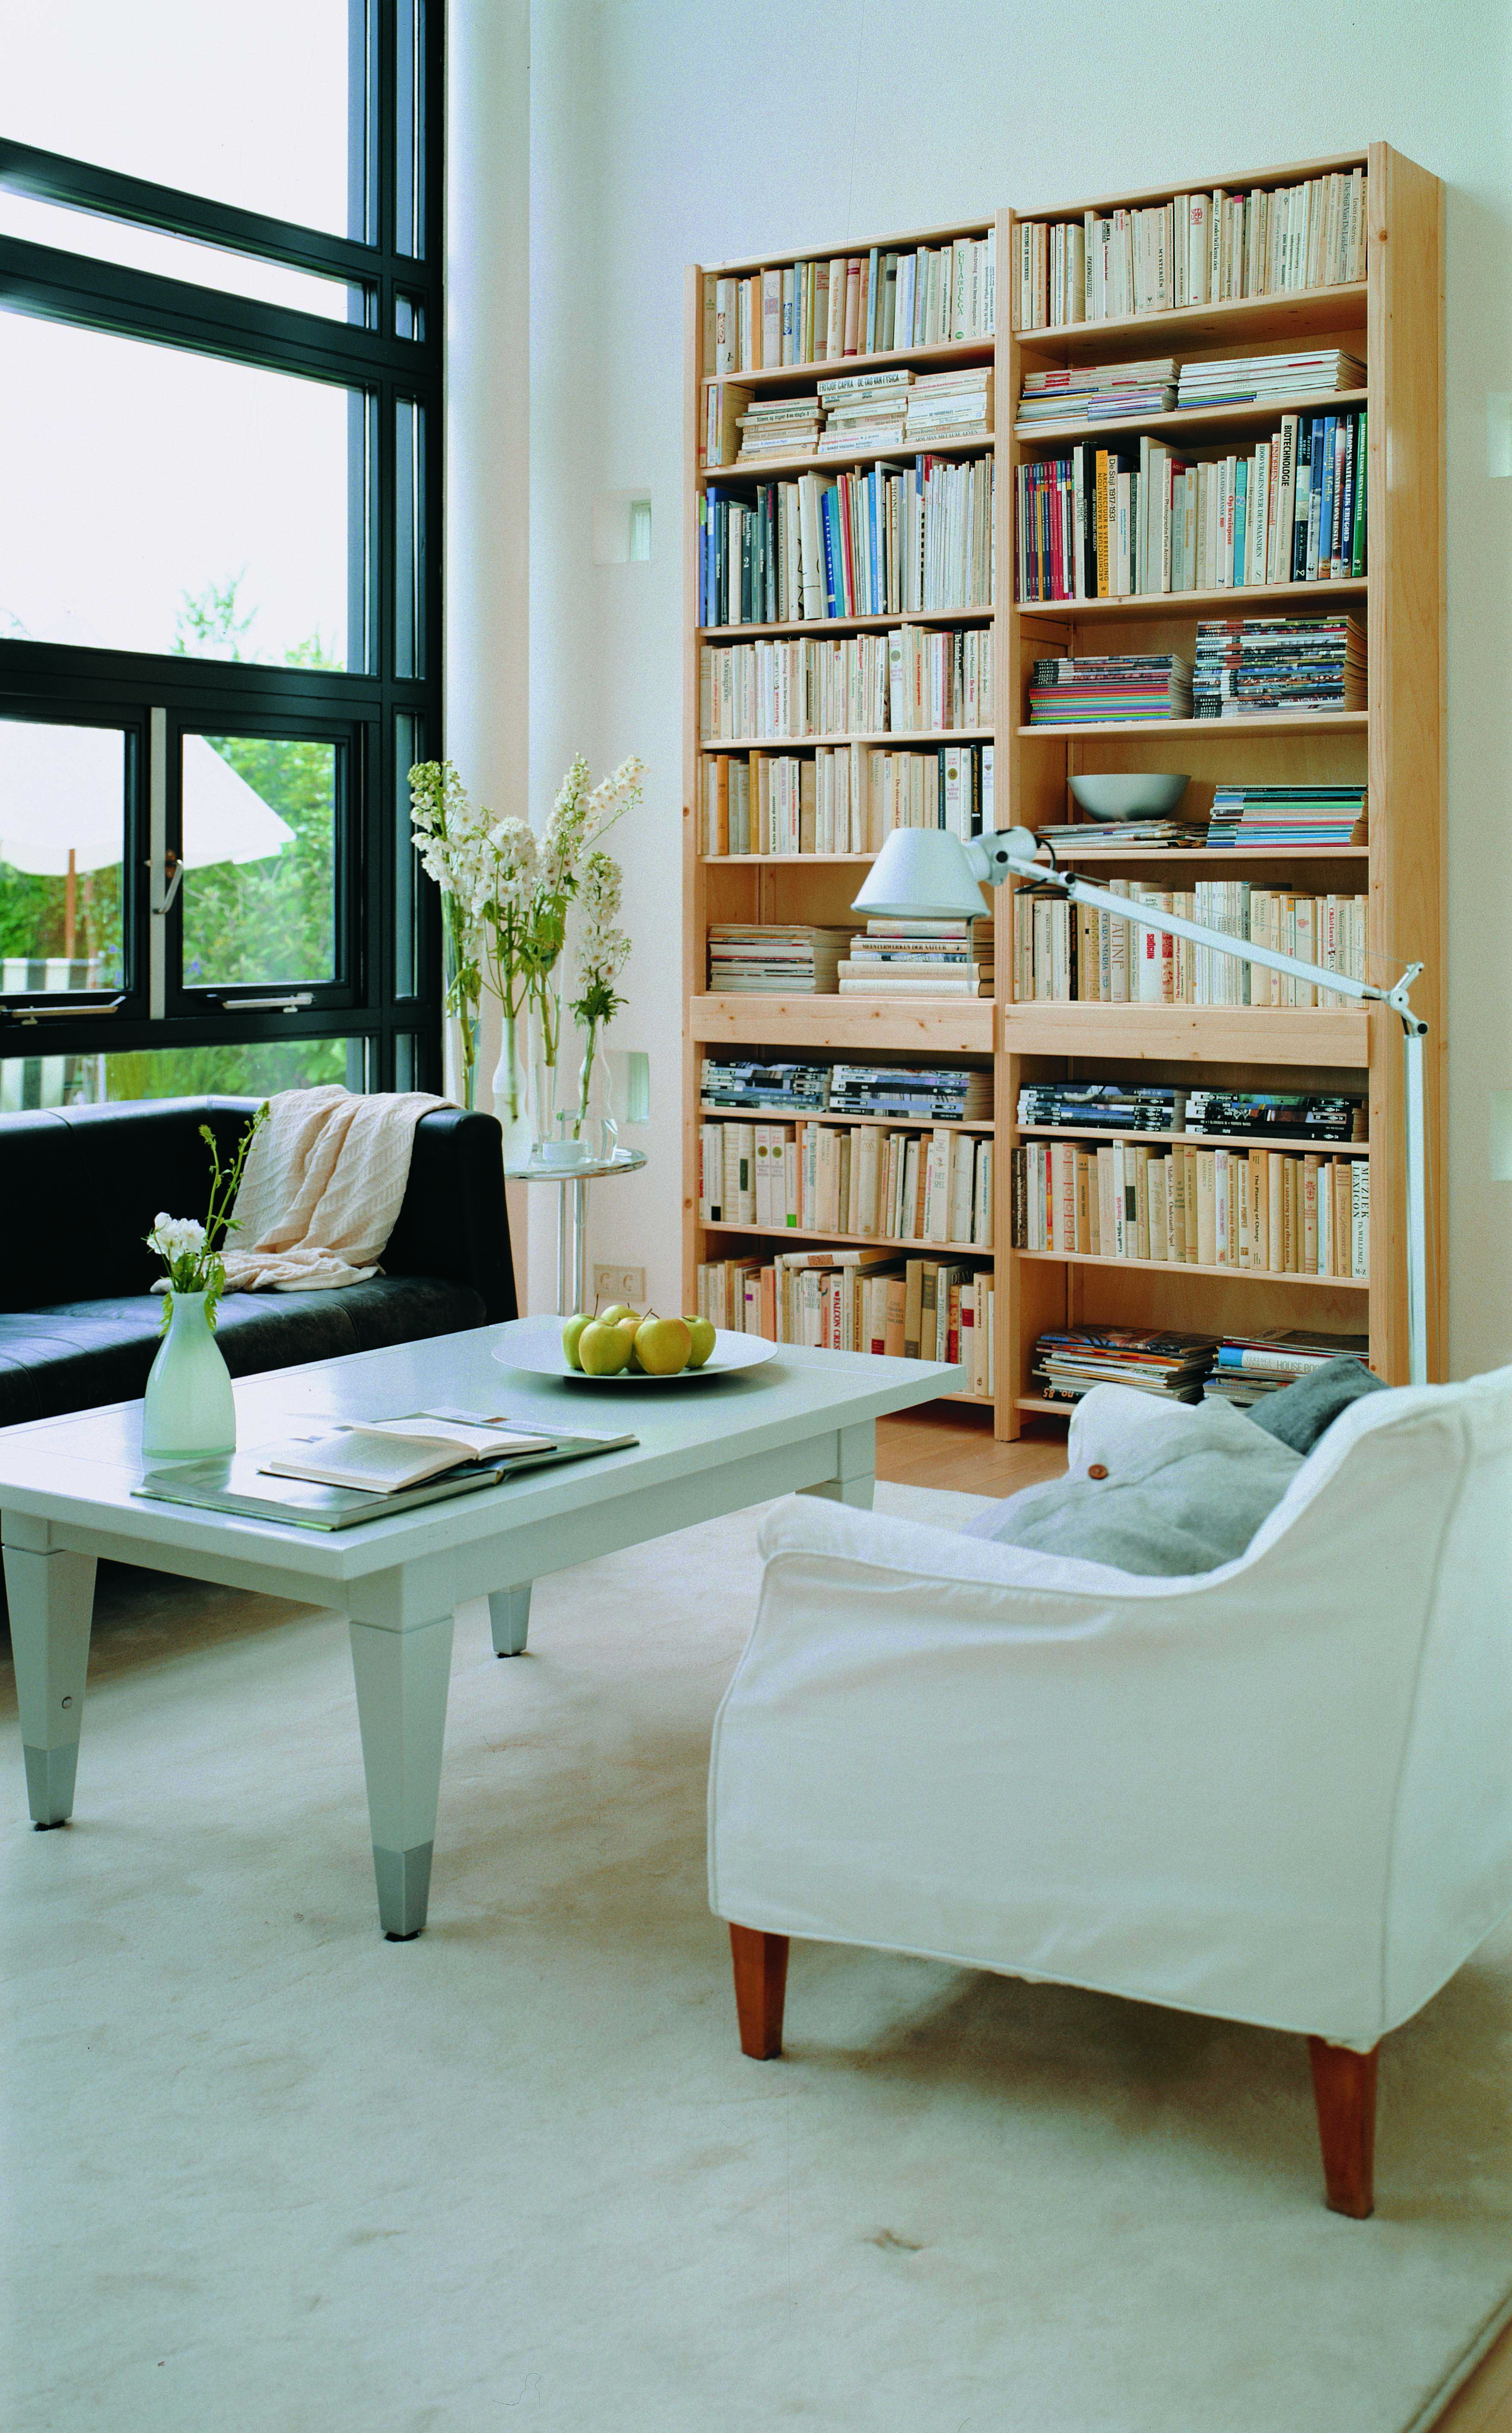 lundia le mobilier modulable bibliotheques